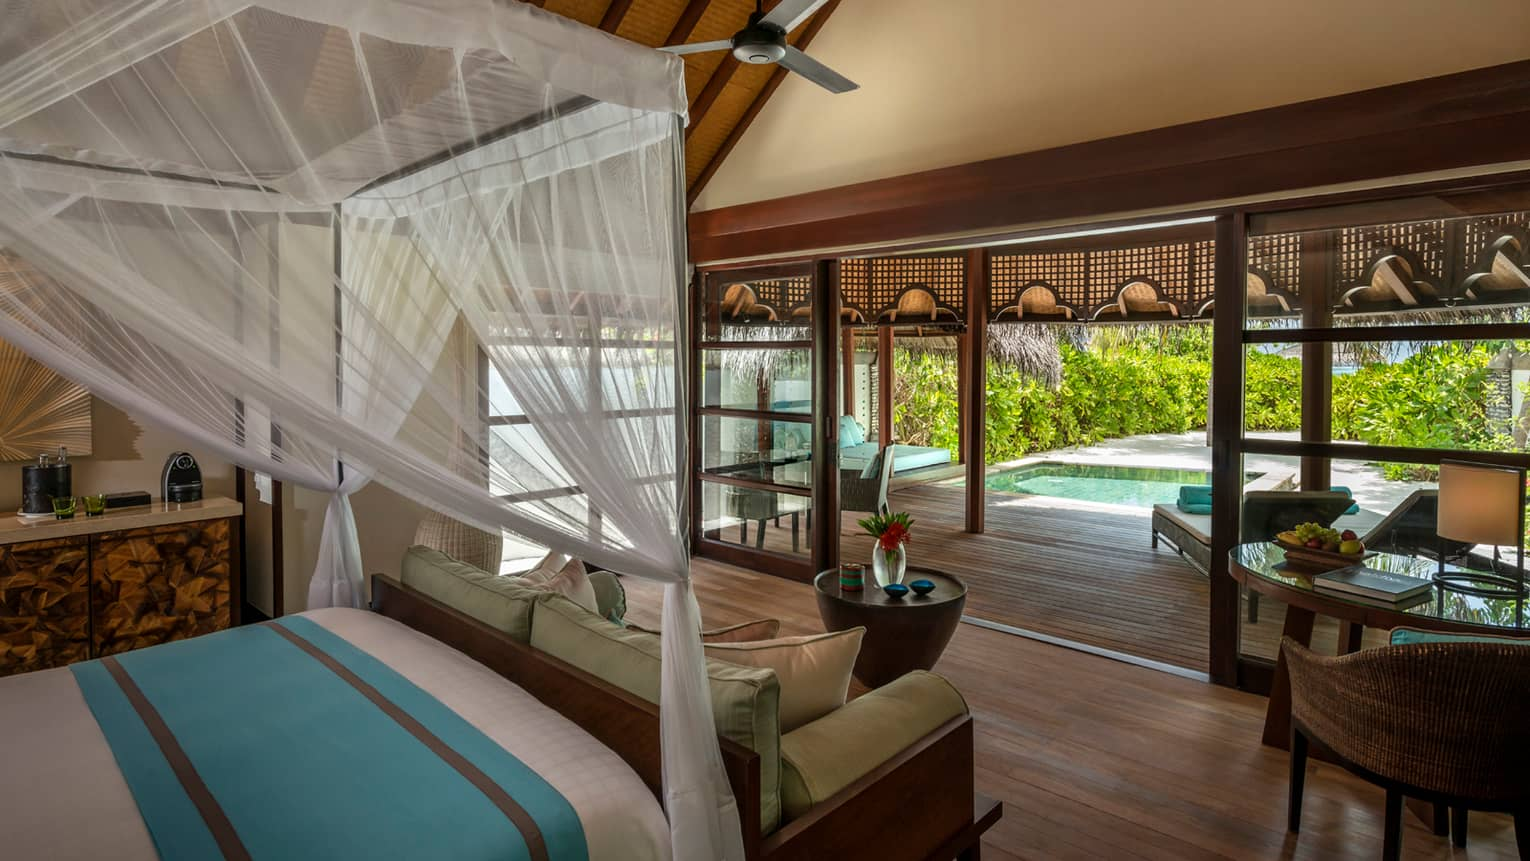 Beach bungalow canopy bed and sofa in front of open-air wall leading to deck and private plunge pool